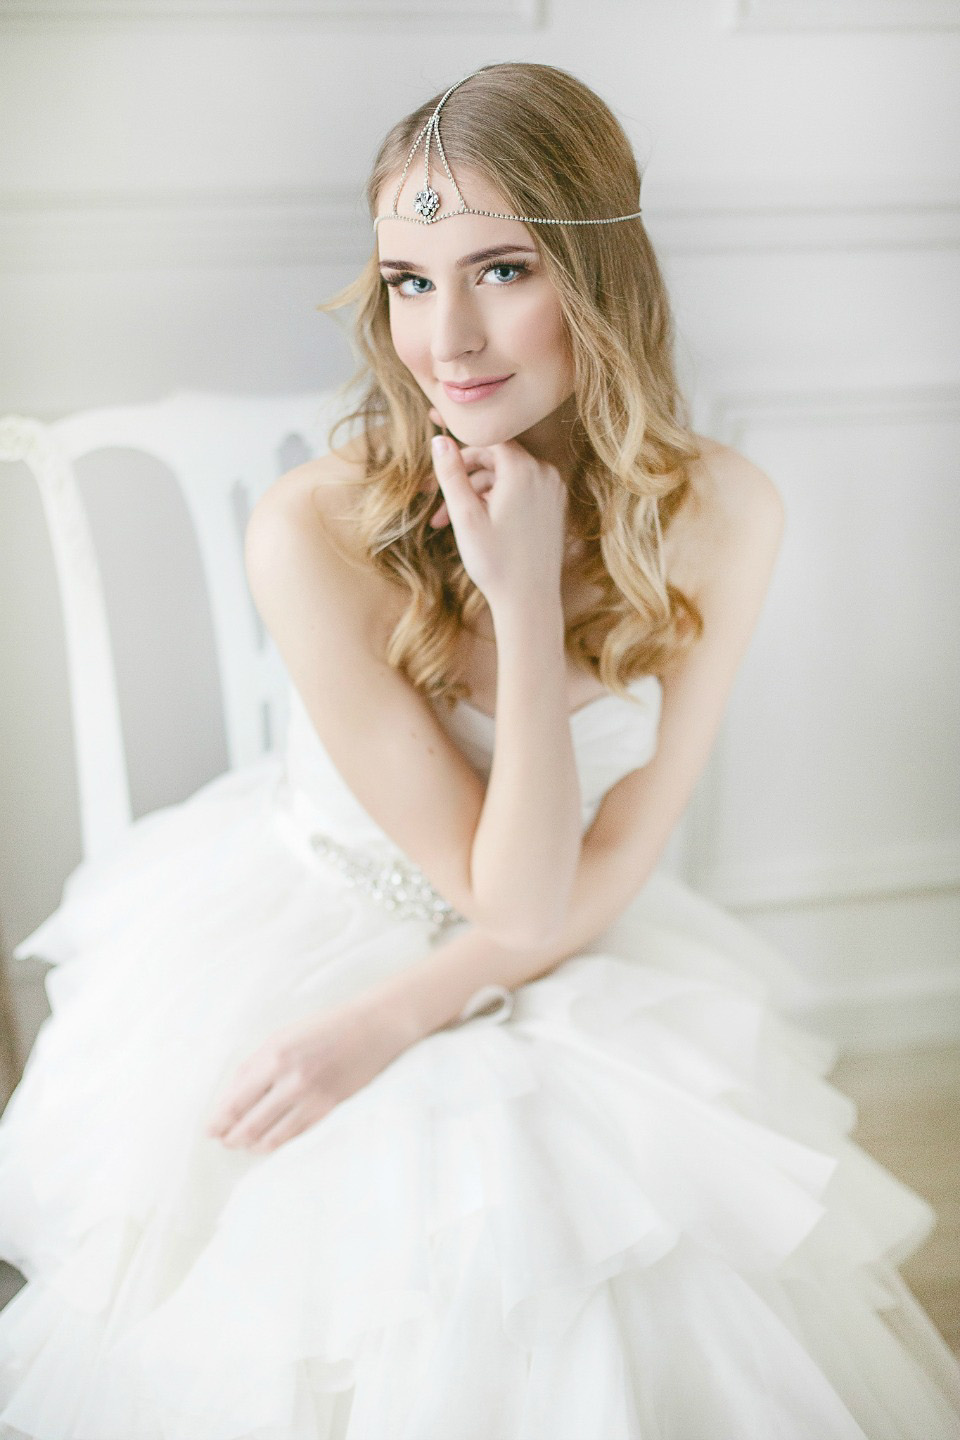 Save 10% on Elegant Bridal Headpieces From LavenderByJurgita